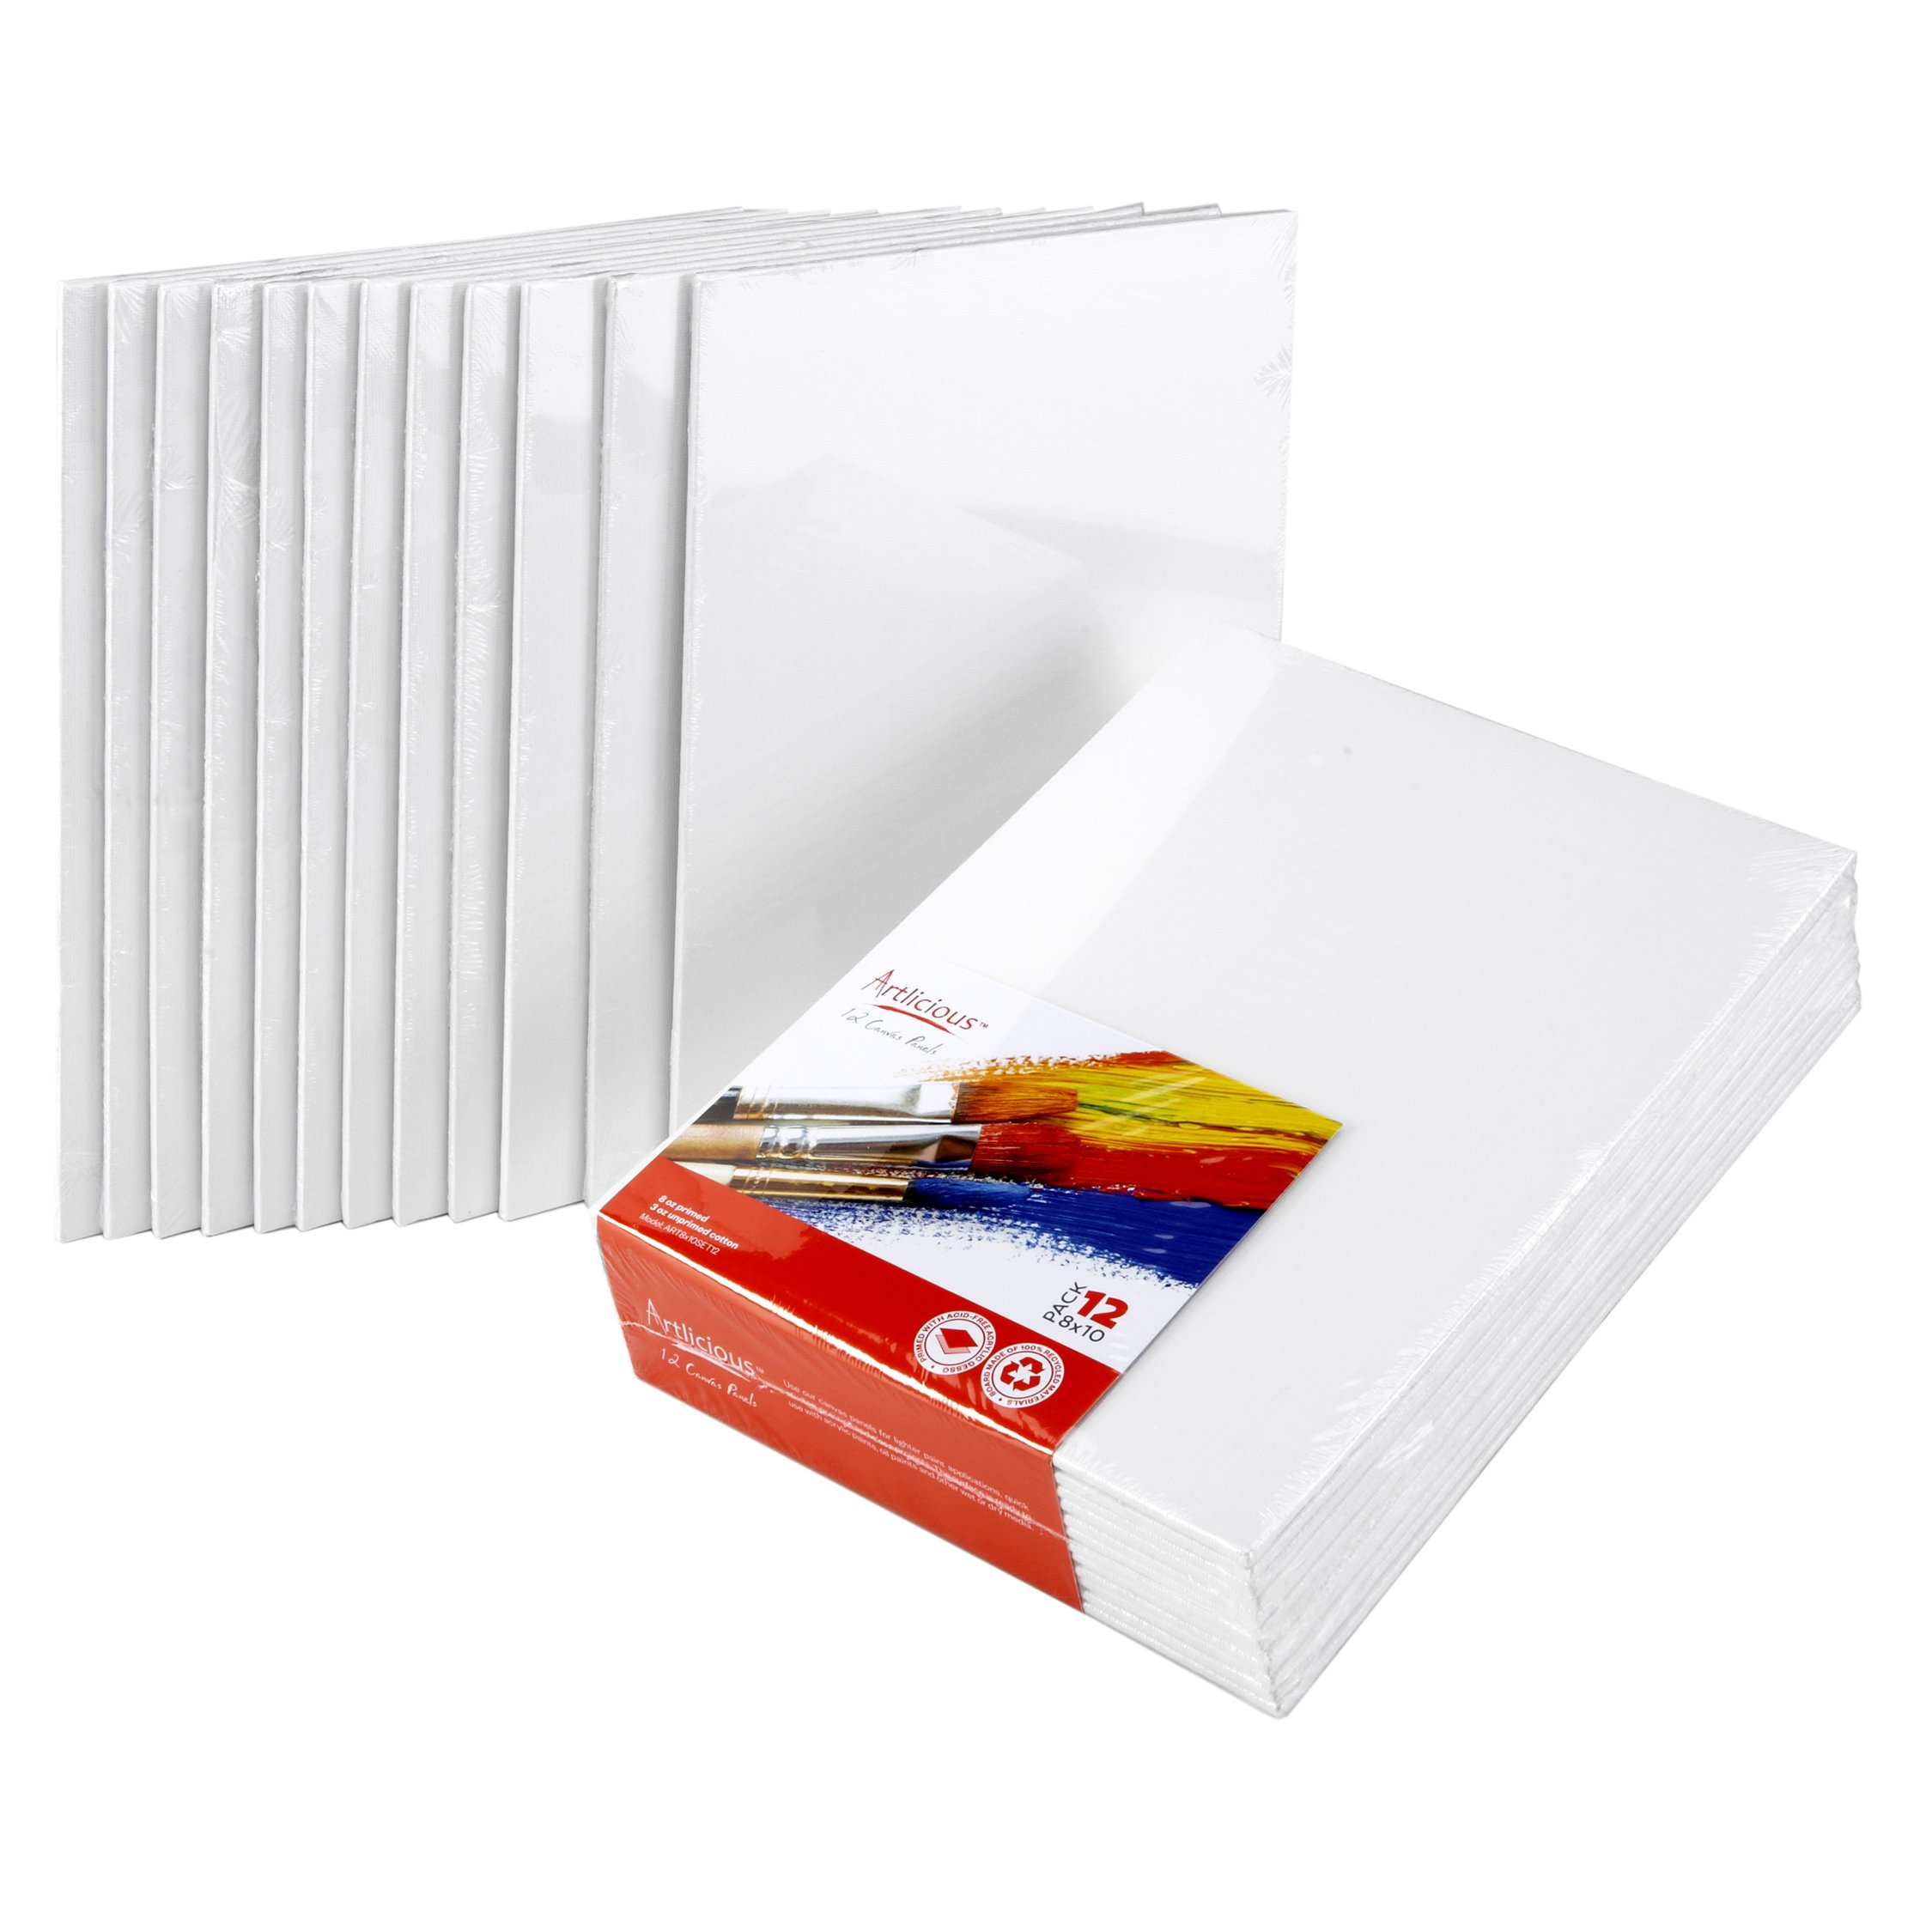 Artlicious - 30 Classroom Value Pack - 8x10 Primed Canvas Panel Boards by Artlicious (Image #1)